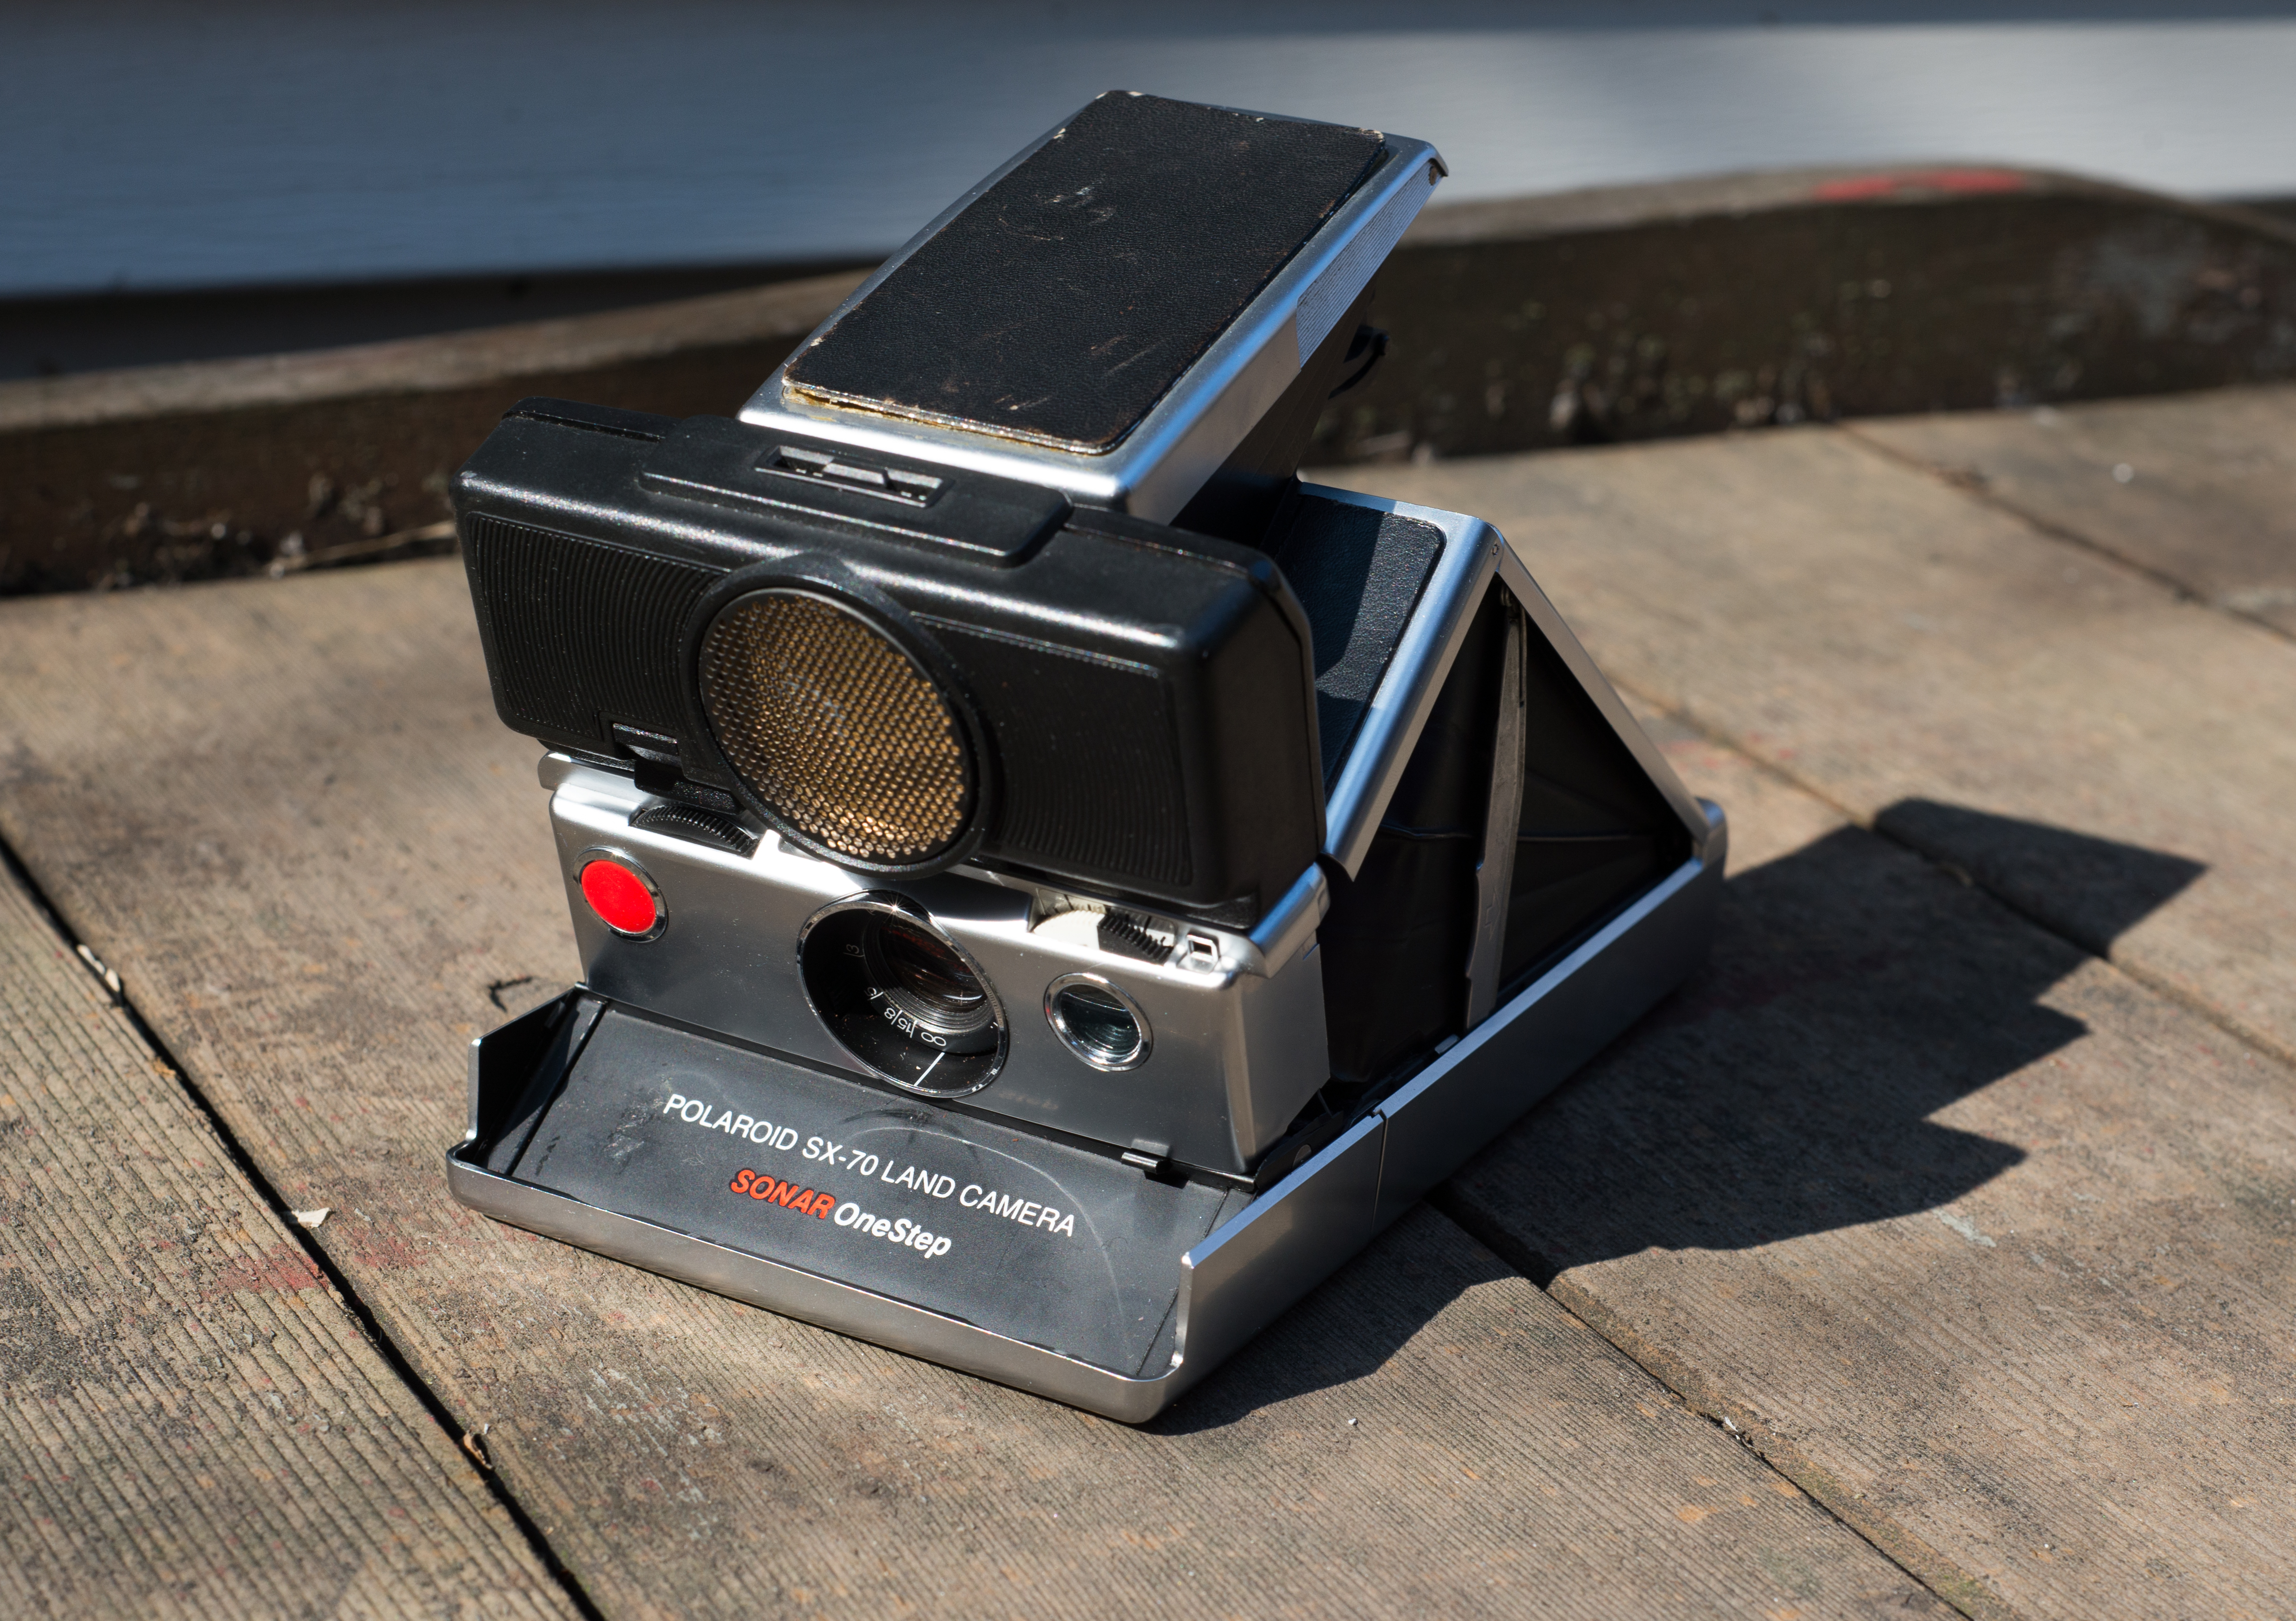 surviving of polaroid in camera market essay 2018-07-10  an ugly picture - the digital camera  and forces more and more camera producers out of the market, it seems that only well-established companies with loyal consumer bases stand a chance at surviving in the.